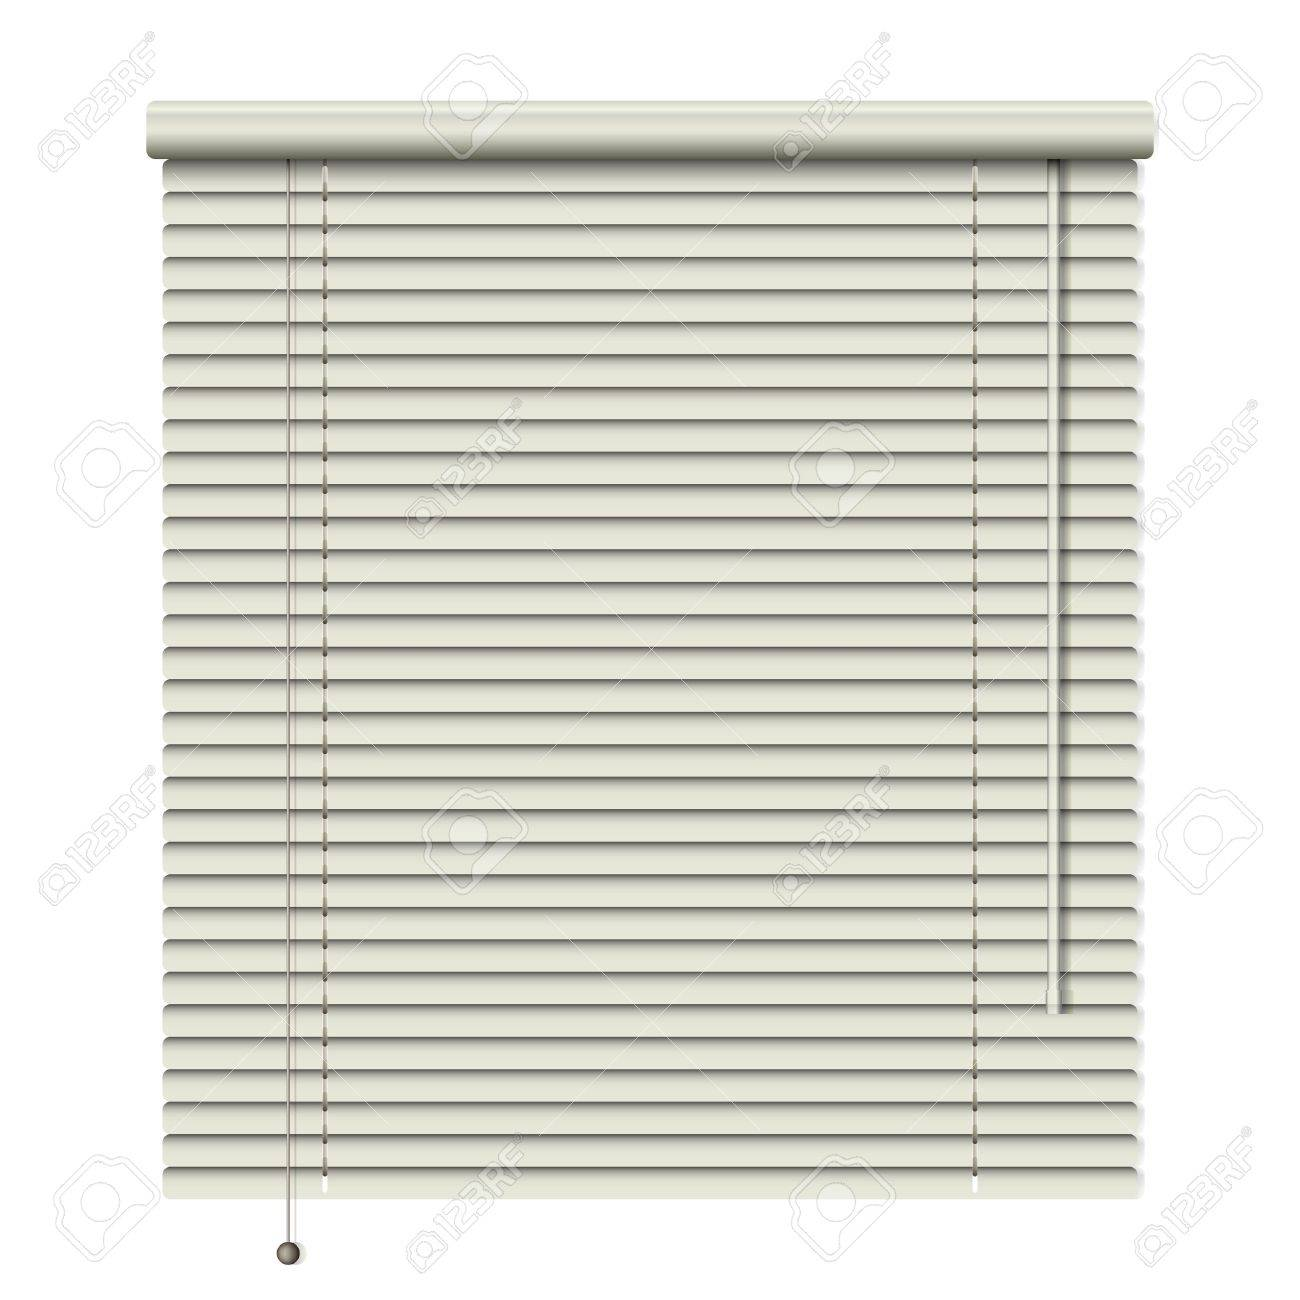 new realistic home related blinds isolated on white background can use like modern object - 19136378